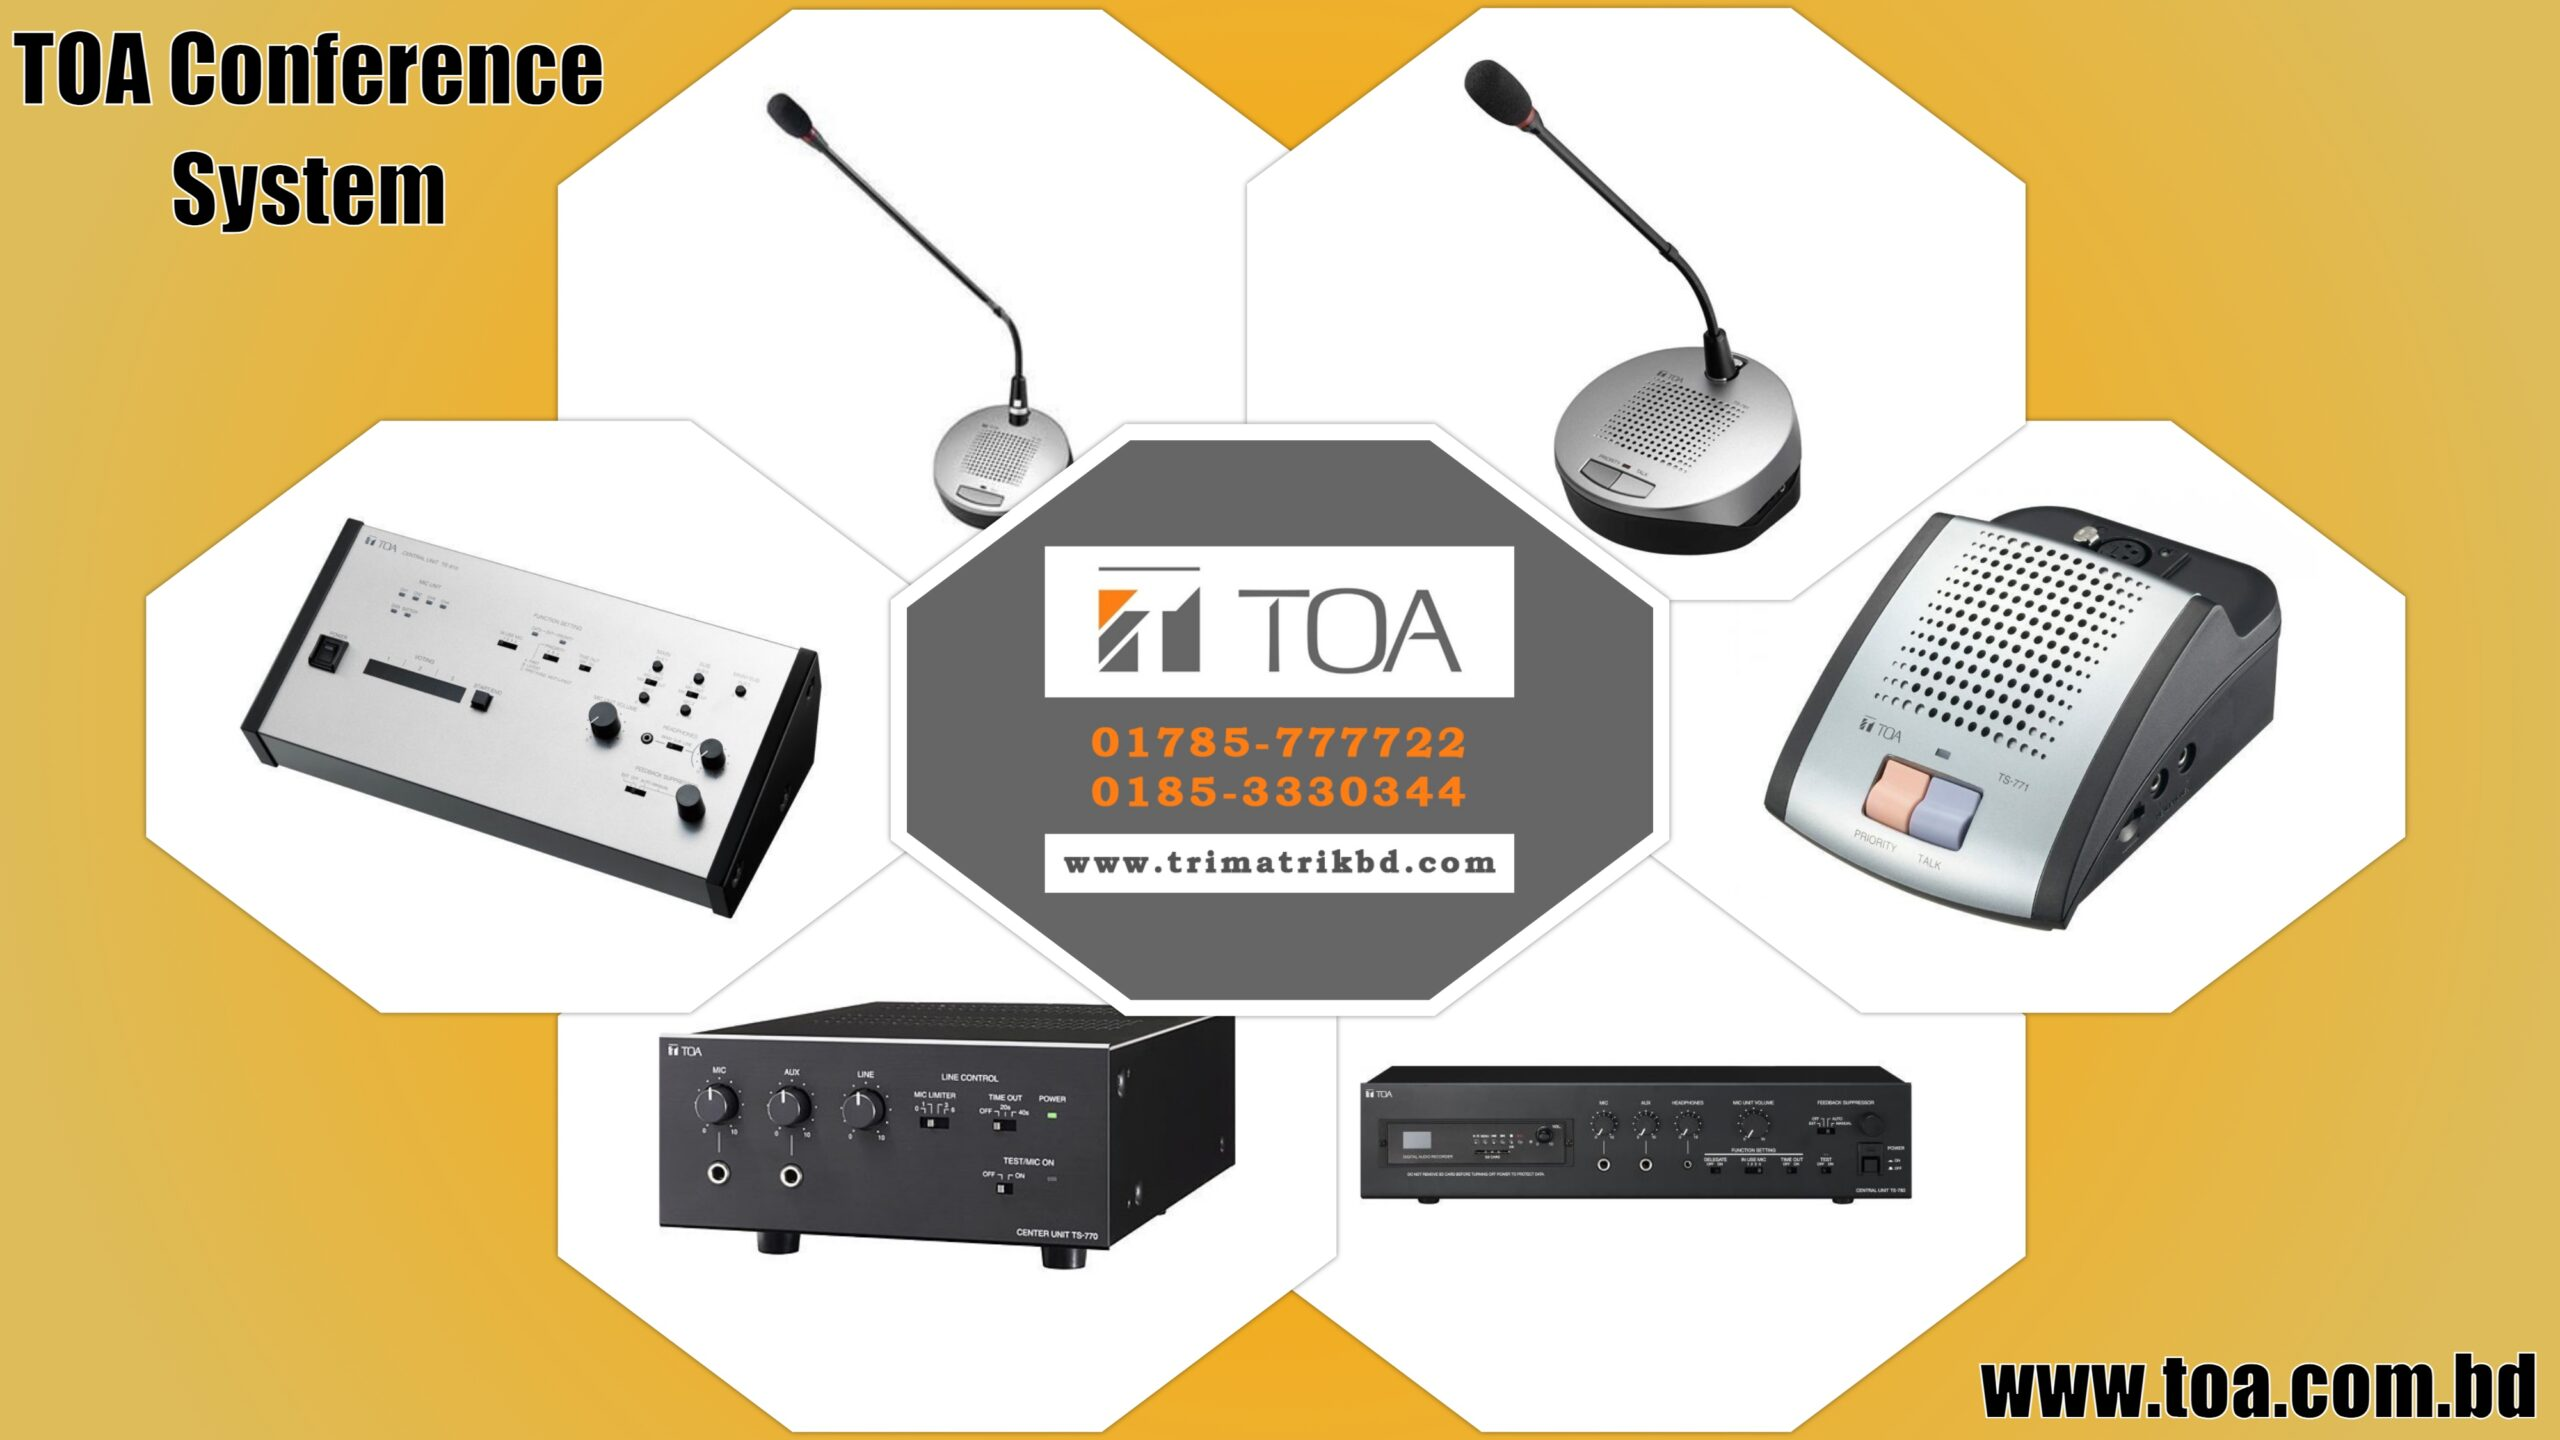 Toa Conference System in Bangladesh